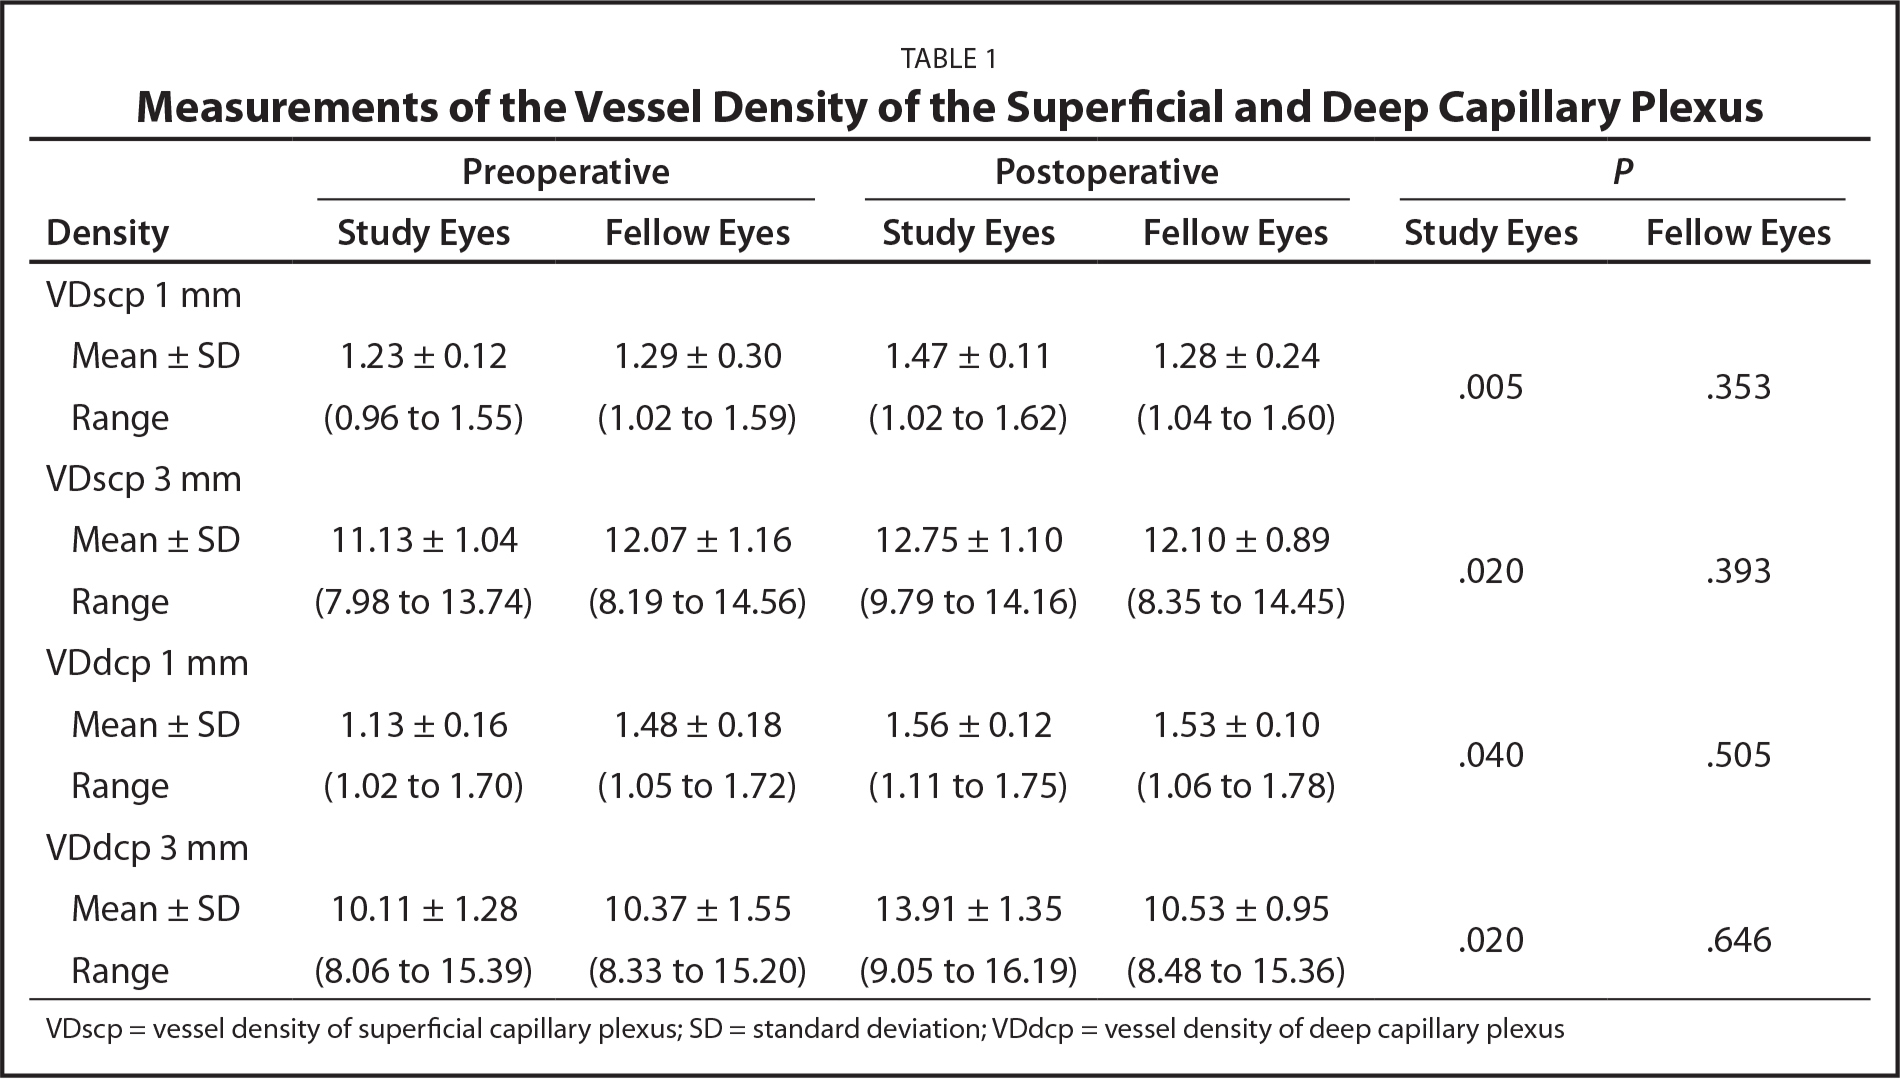 Measurements of the Vessel Density of the Superficial and Deep Capillary Plexus